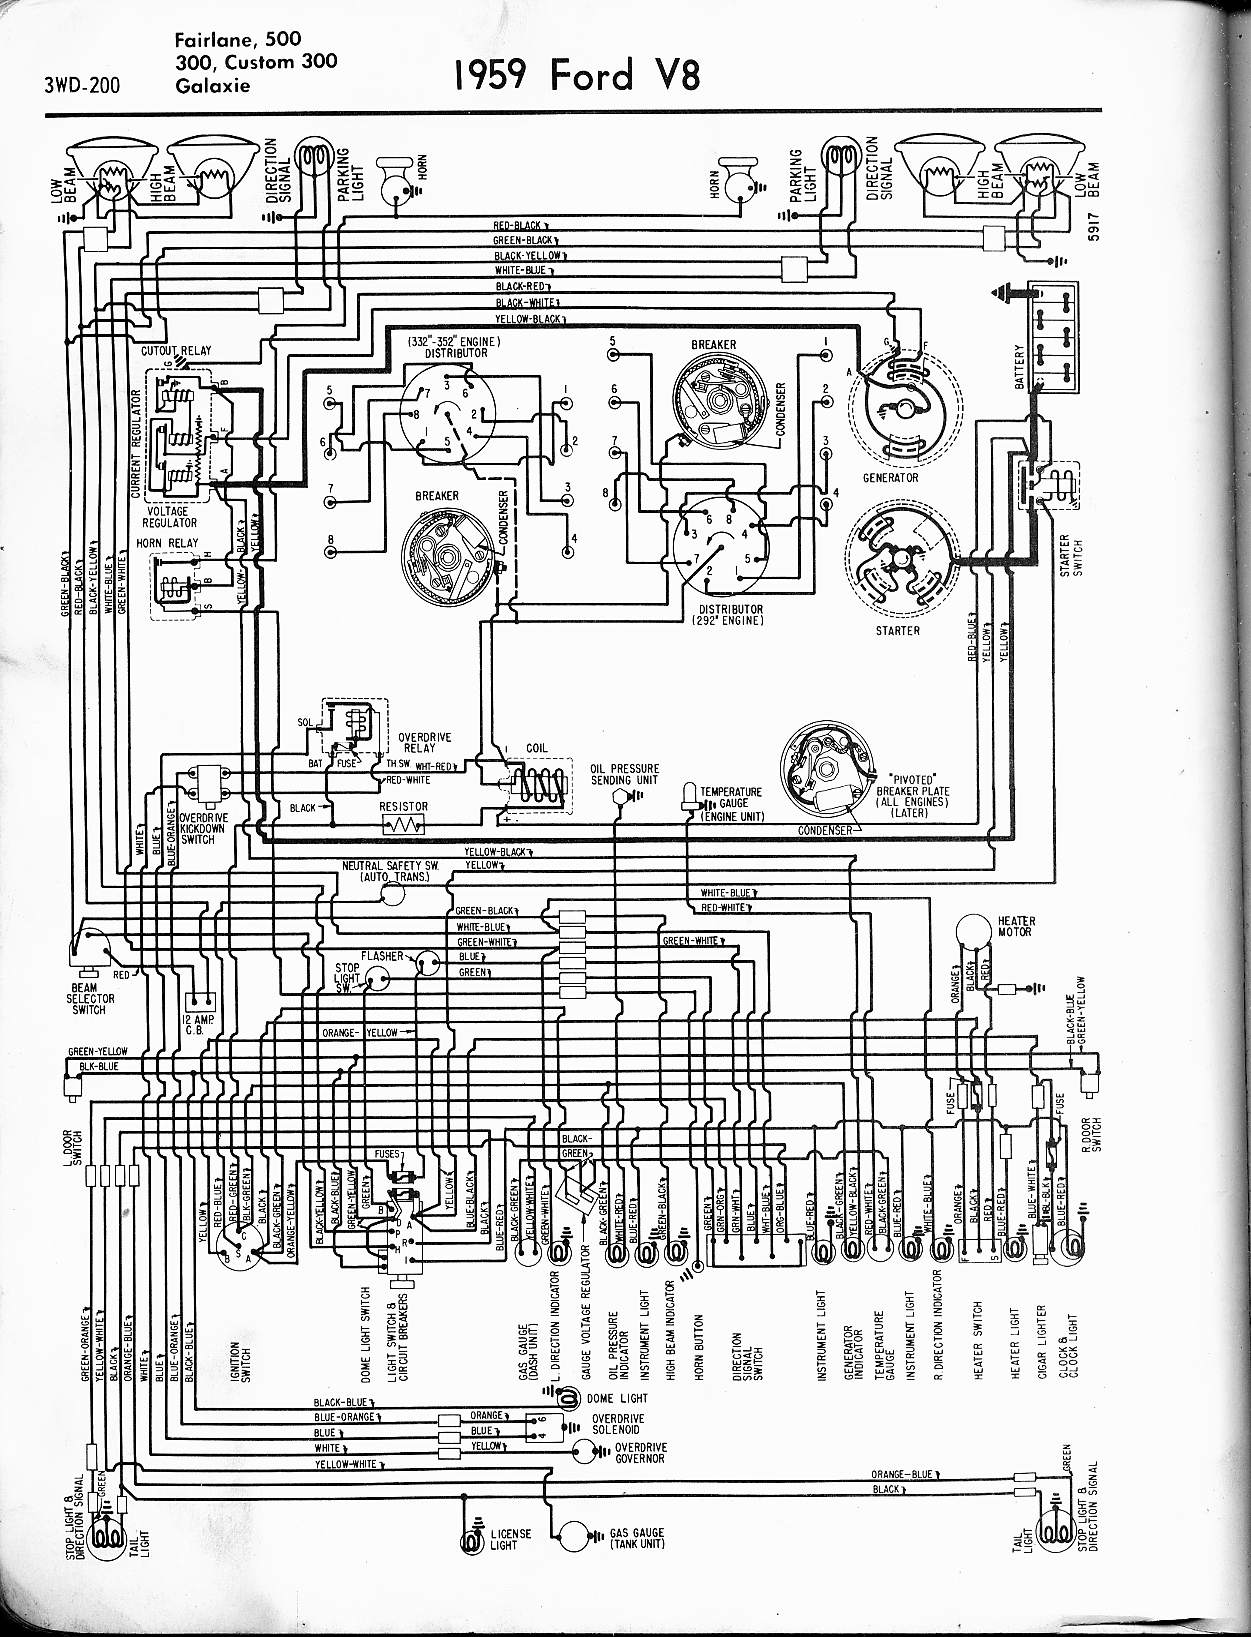 1937 Ford Wiring Diagram | Wiring Liry Lincoln As Wiring Diagram on